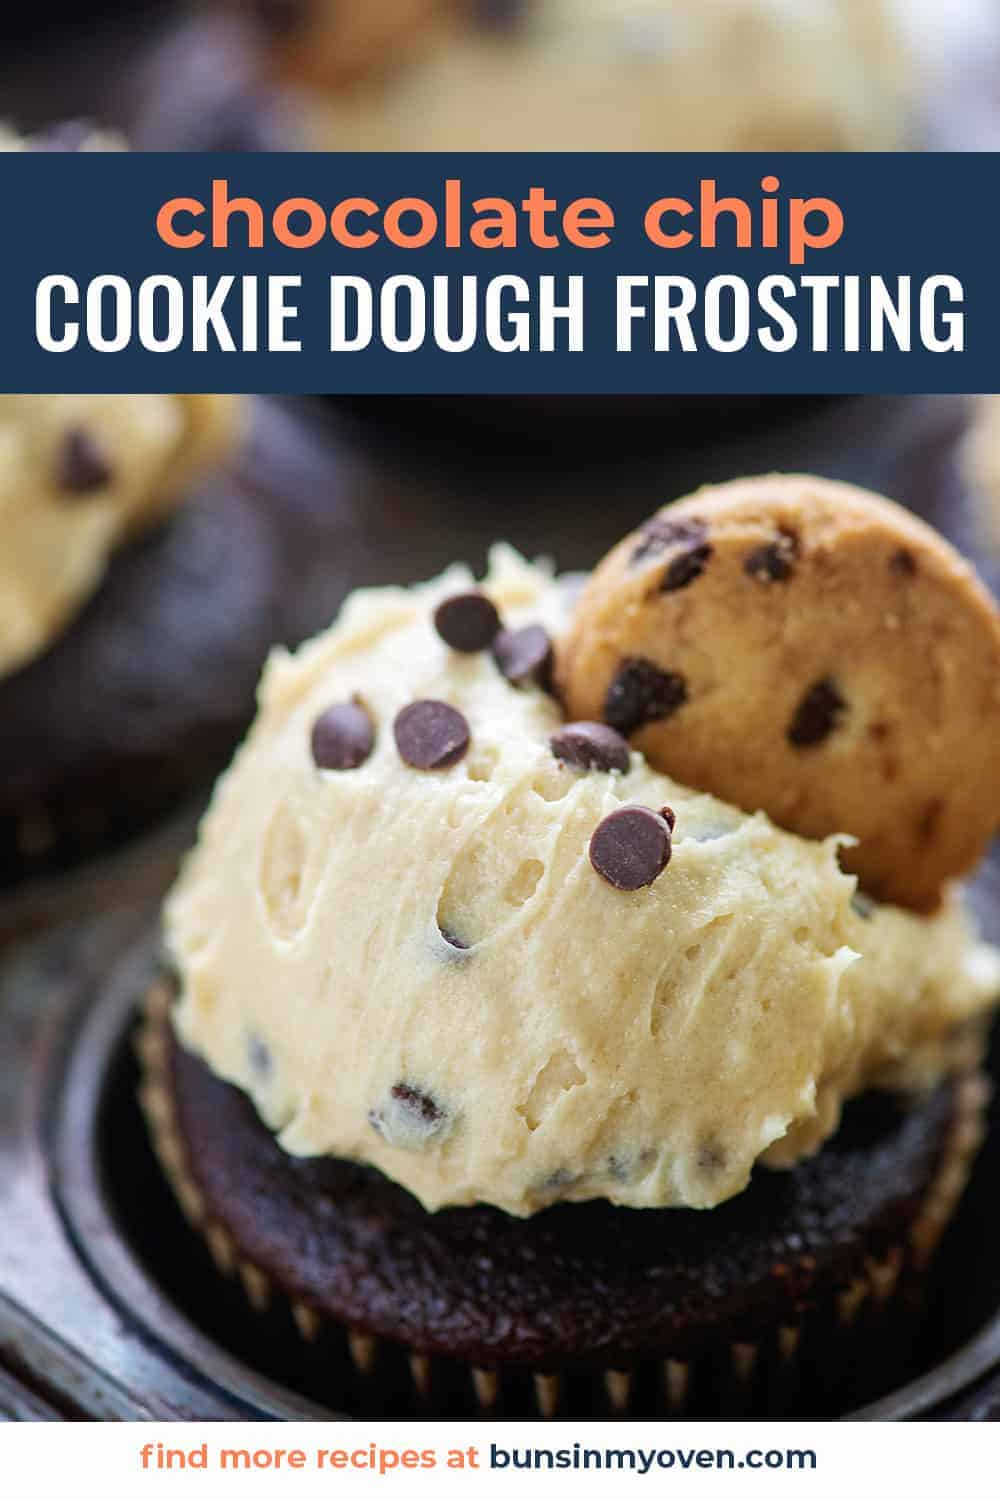 chocolate chip cookie dough frosting on chocolate cupcake